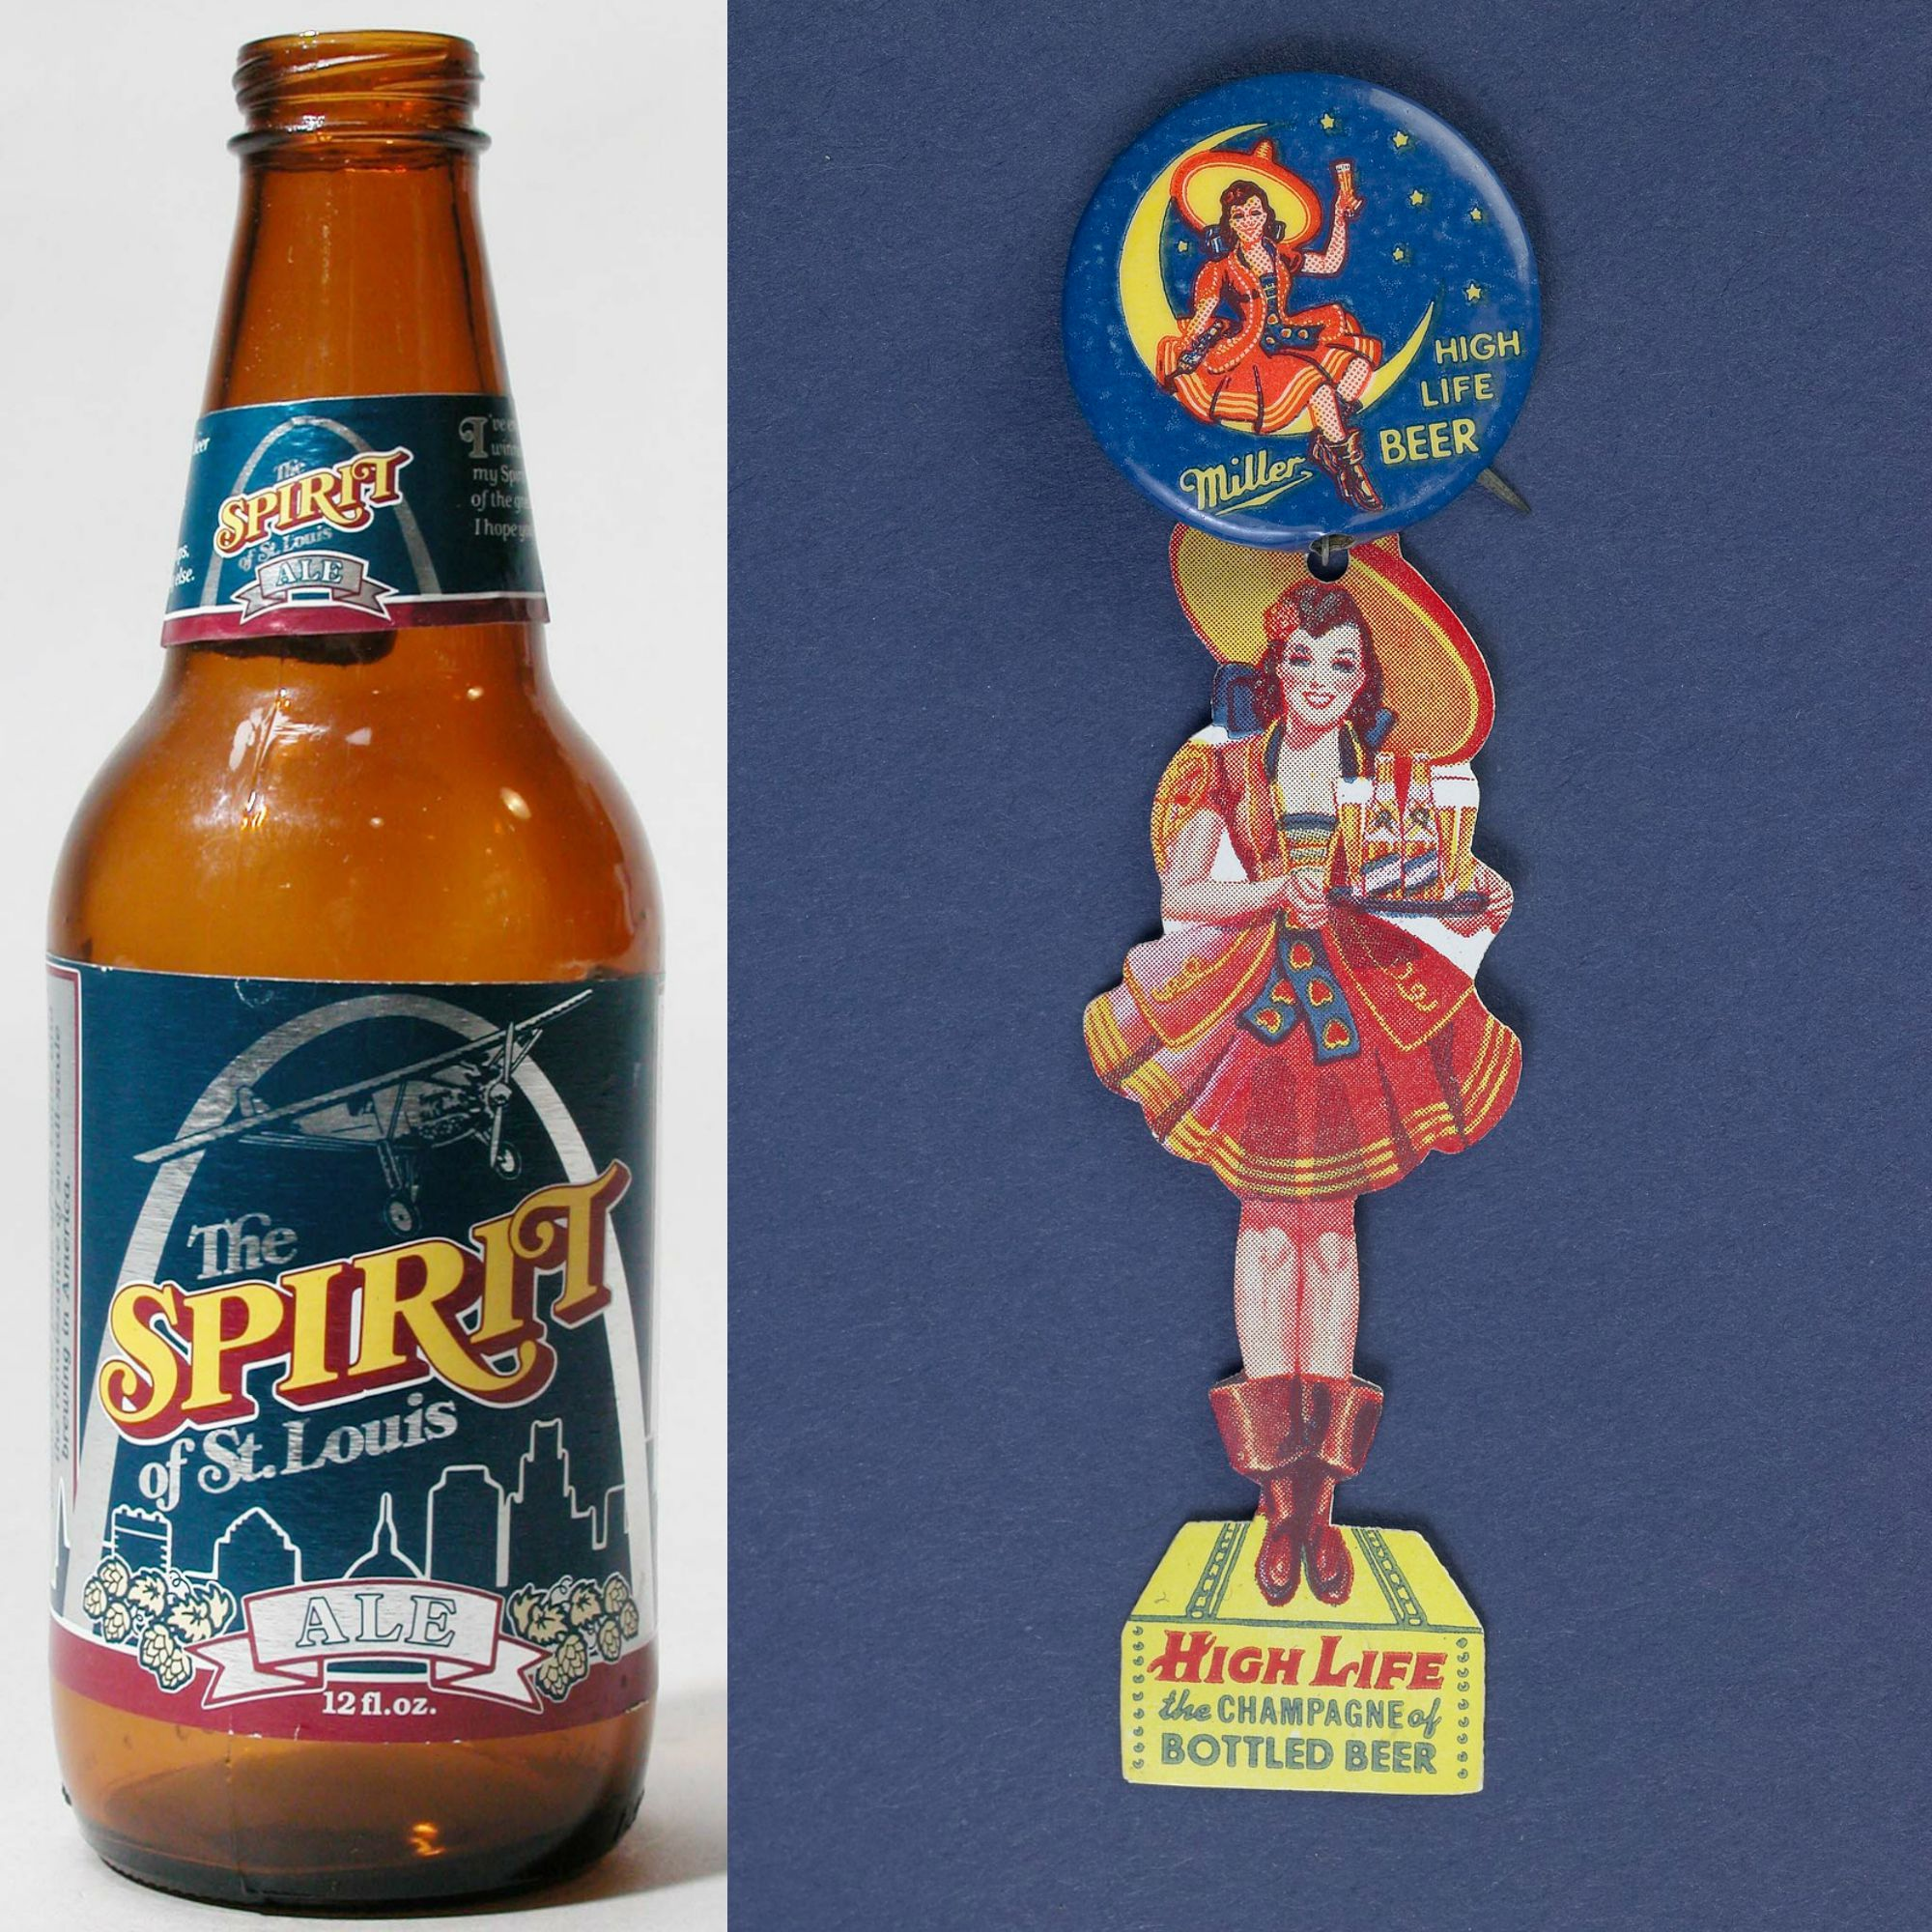 Beer bottle and advertising piece